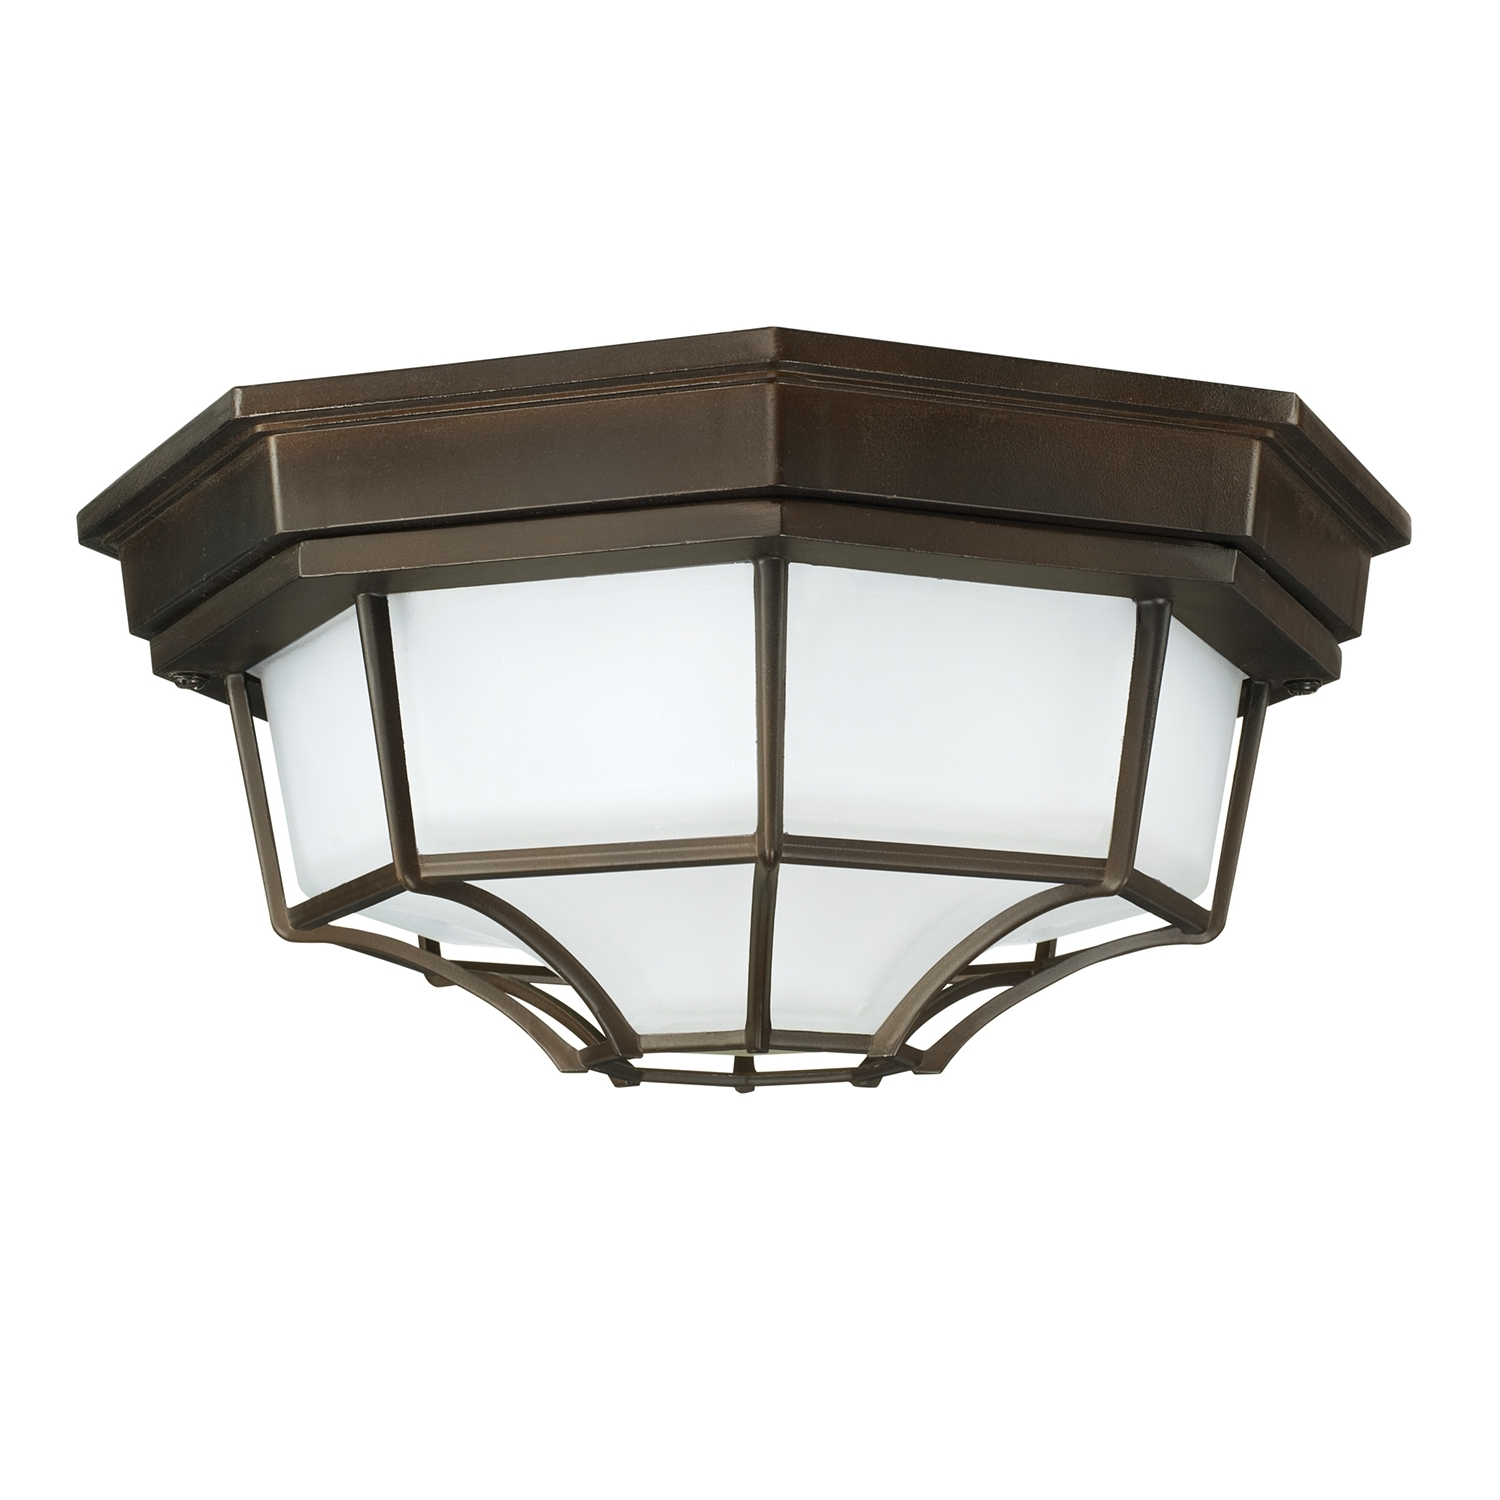 Current Outdoor Porch Ceiling Lights Regarding Outdoor Ceiling Lighting (View 16 of 20)